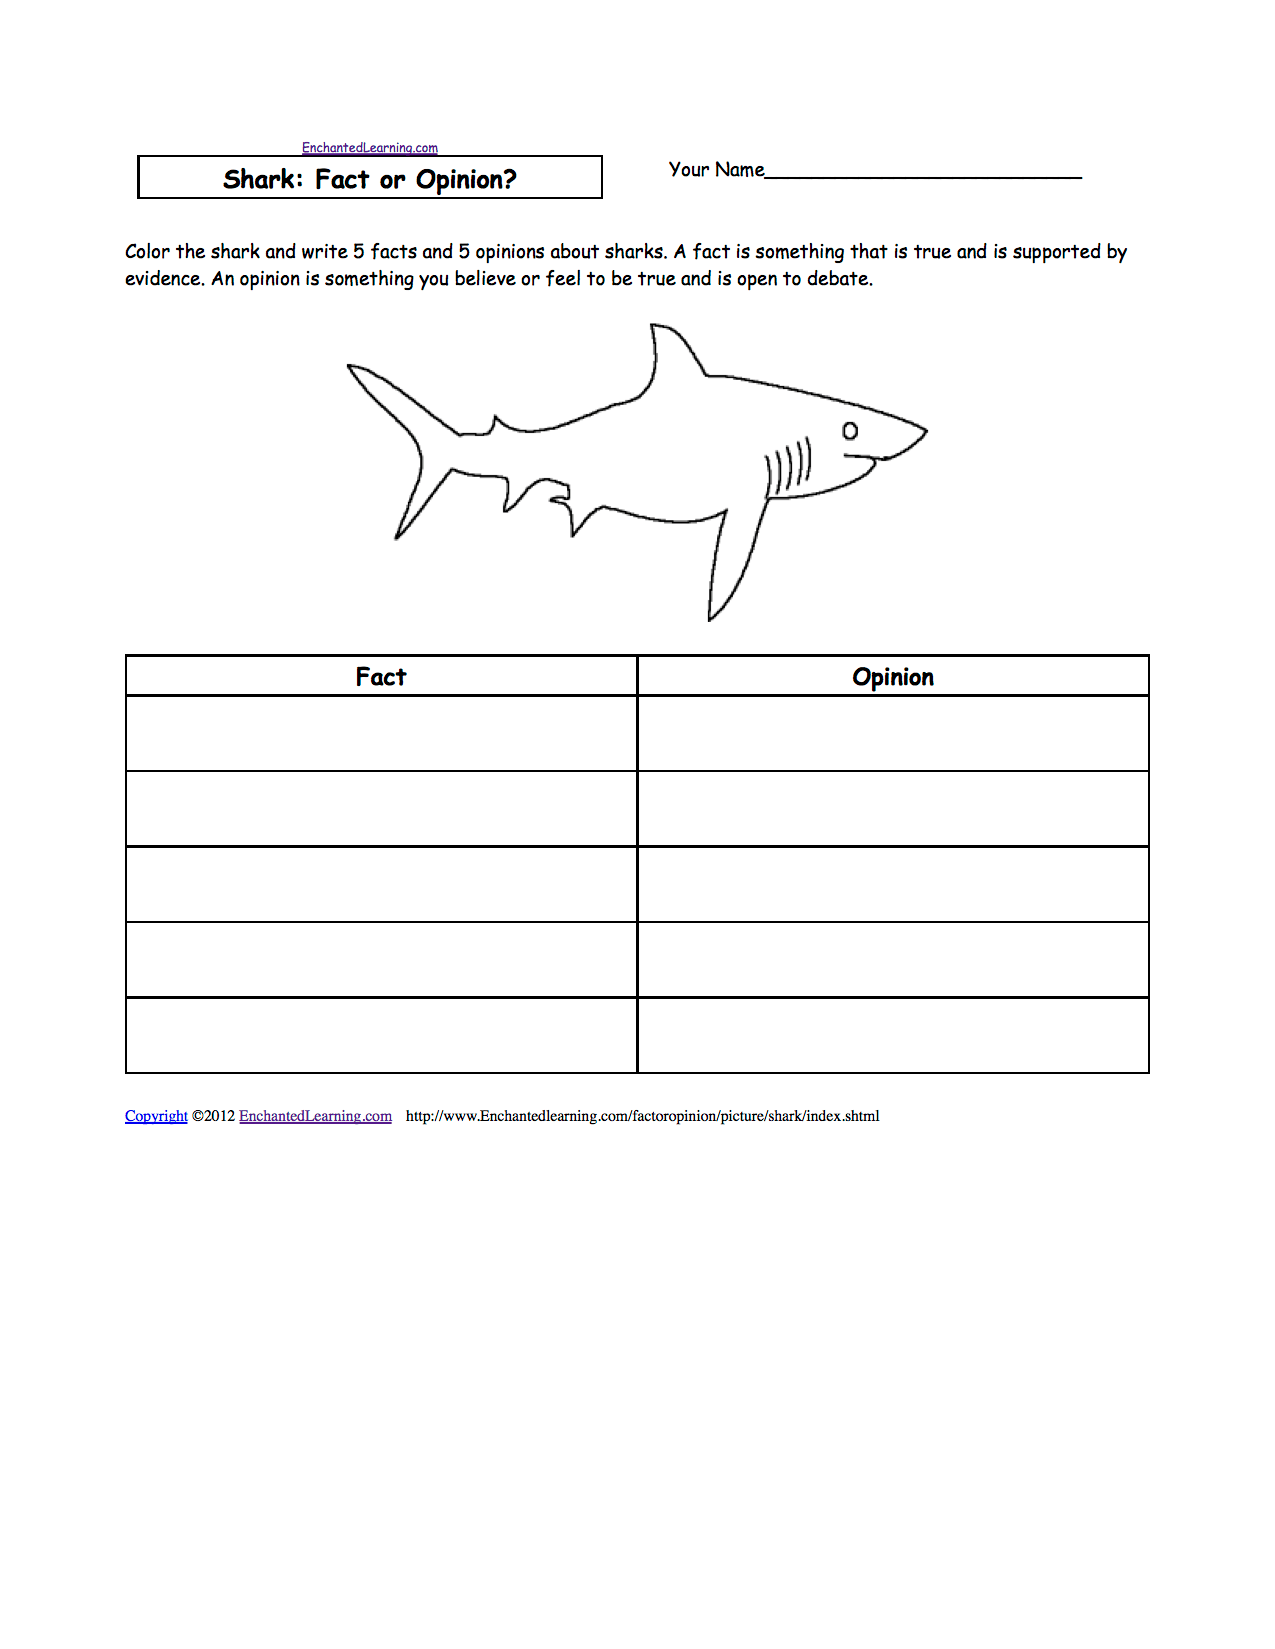 Sharks At Enchantedlearning